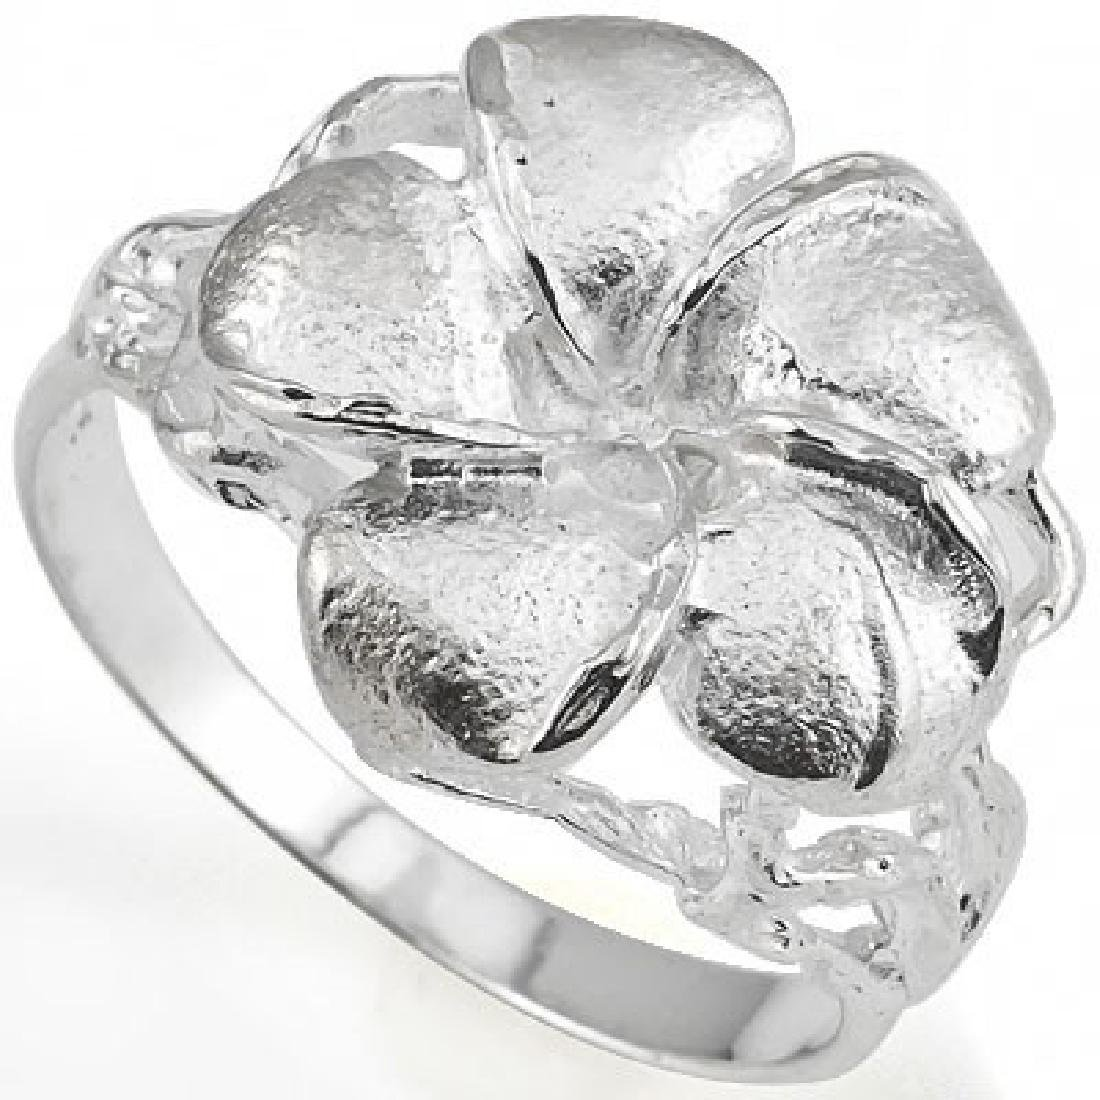 PLUMERIA RING WITH 0.925 STERLING SILVER